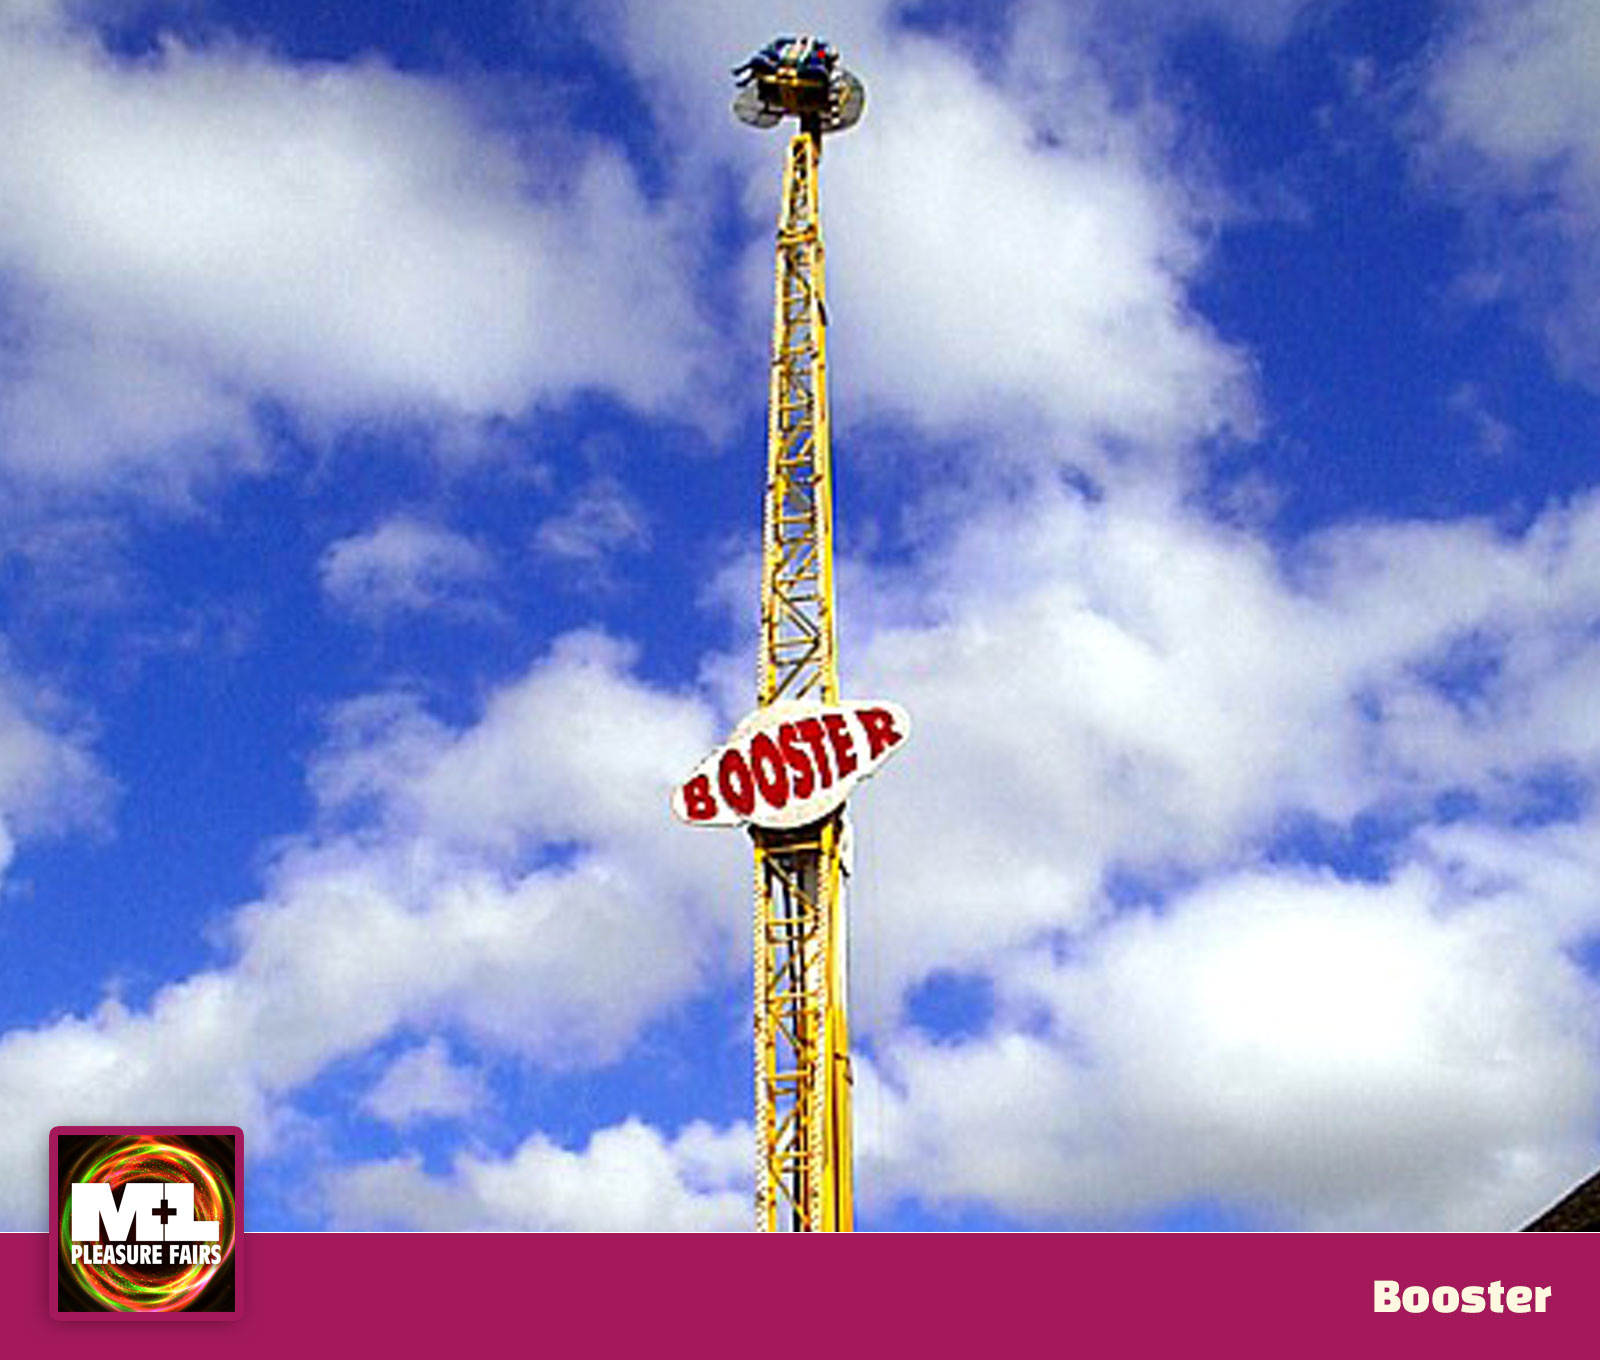 Booster Ride Image